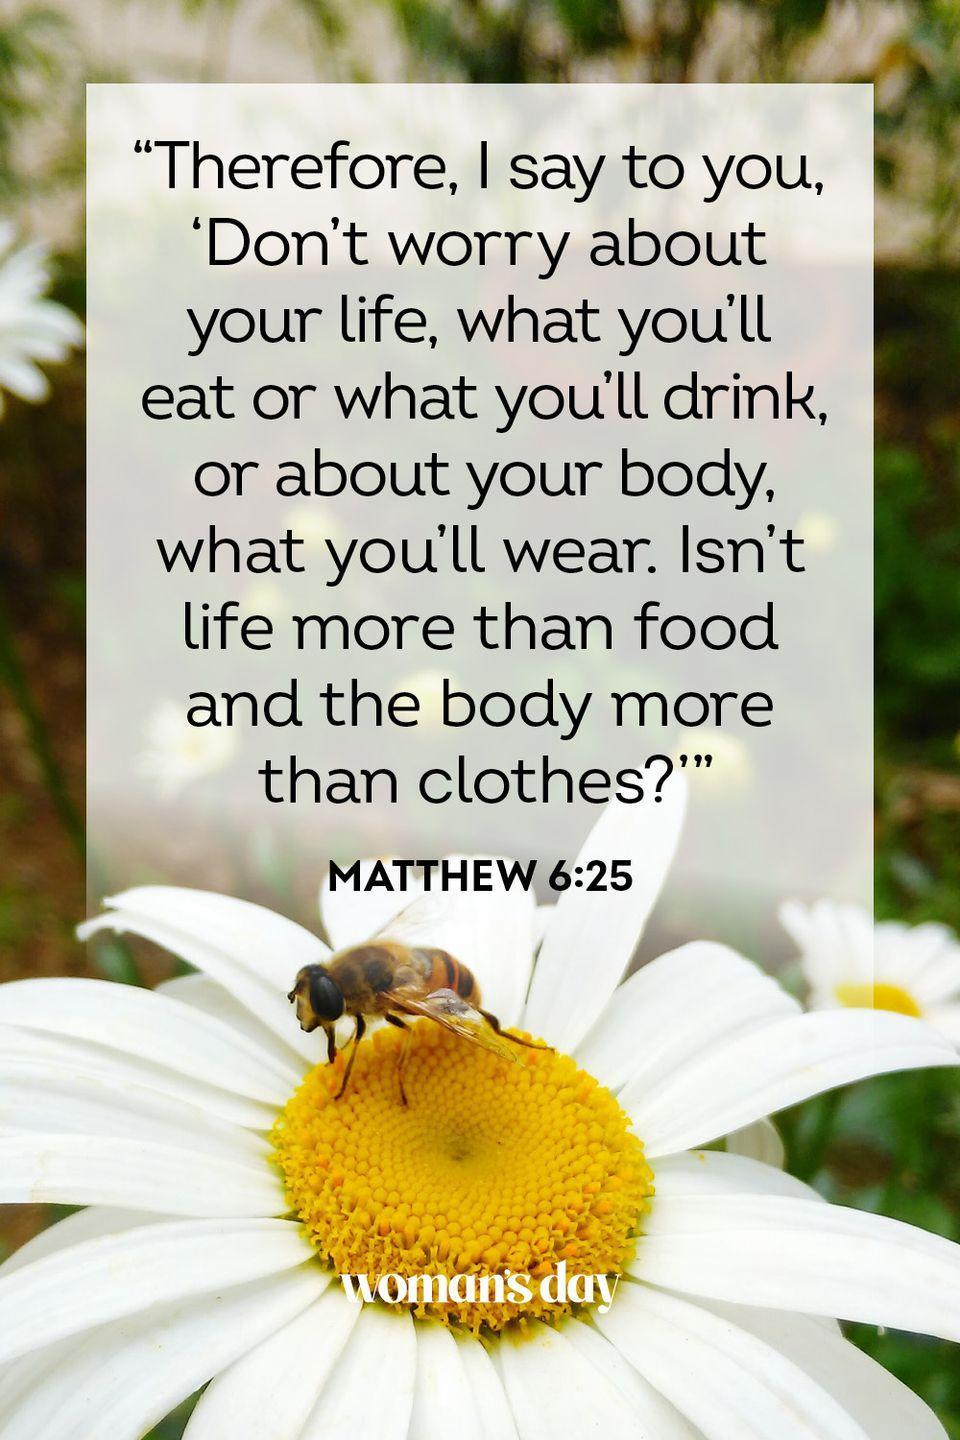 """<p>""""Therefore, I say to you, 'Don't worry about your life, what you'll eat or what you'll drink, or about your body, what you'll wear. Isn't life more than food and the body more than clothes?'"""" </p><p><strong>The Good News:</strong> Most of the things you worry about are small things. In the grand scheme of life, they are not worth your stress.<br></p>"""